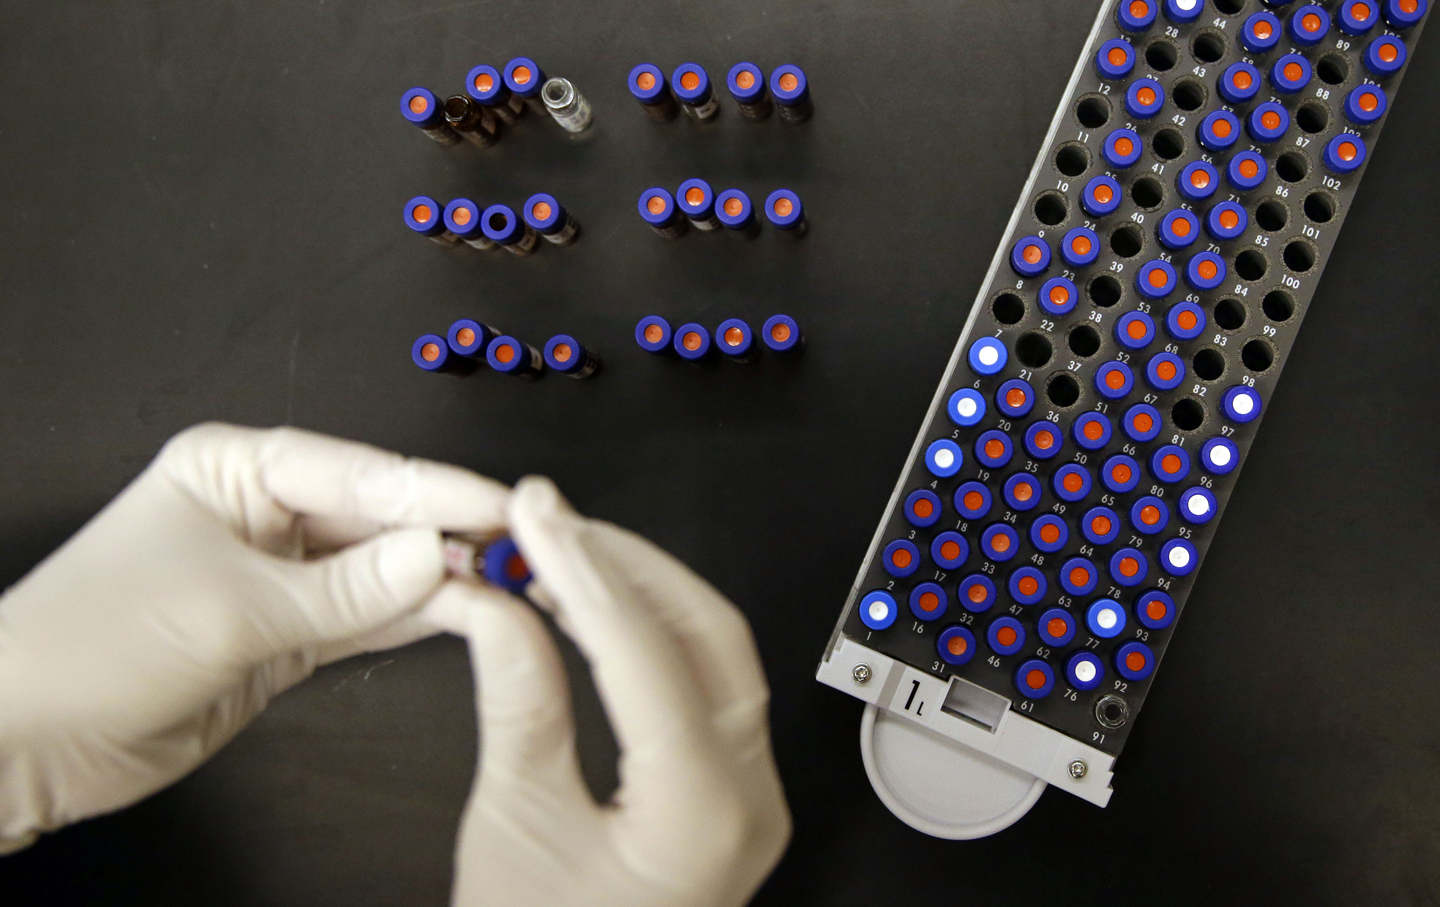 A researcher works alongside a tray of vials containing cerebral spinal fluid.